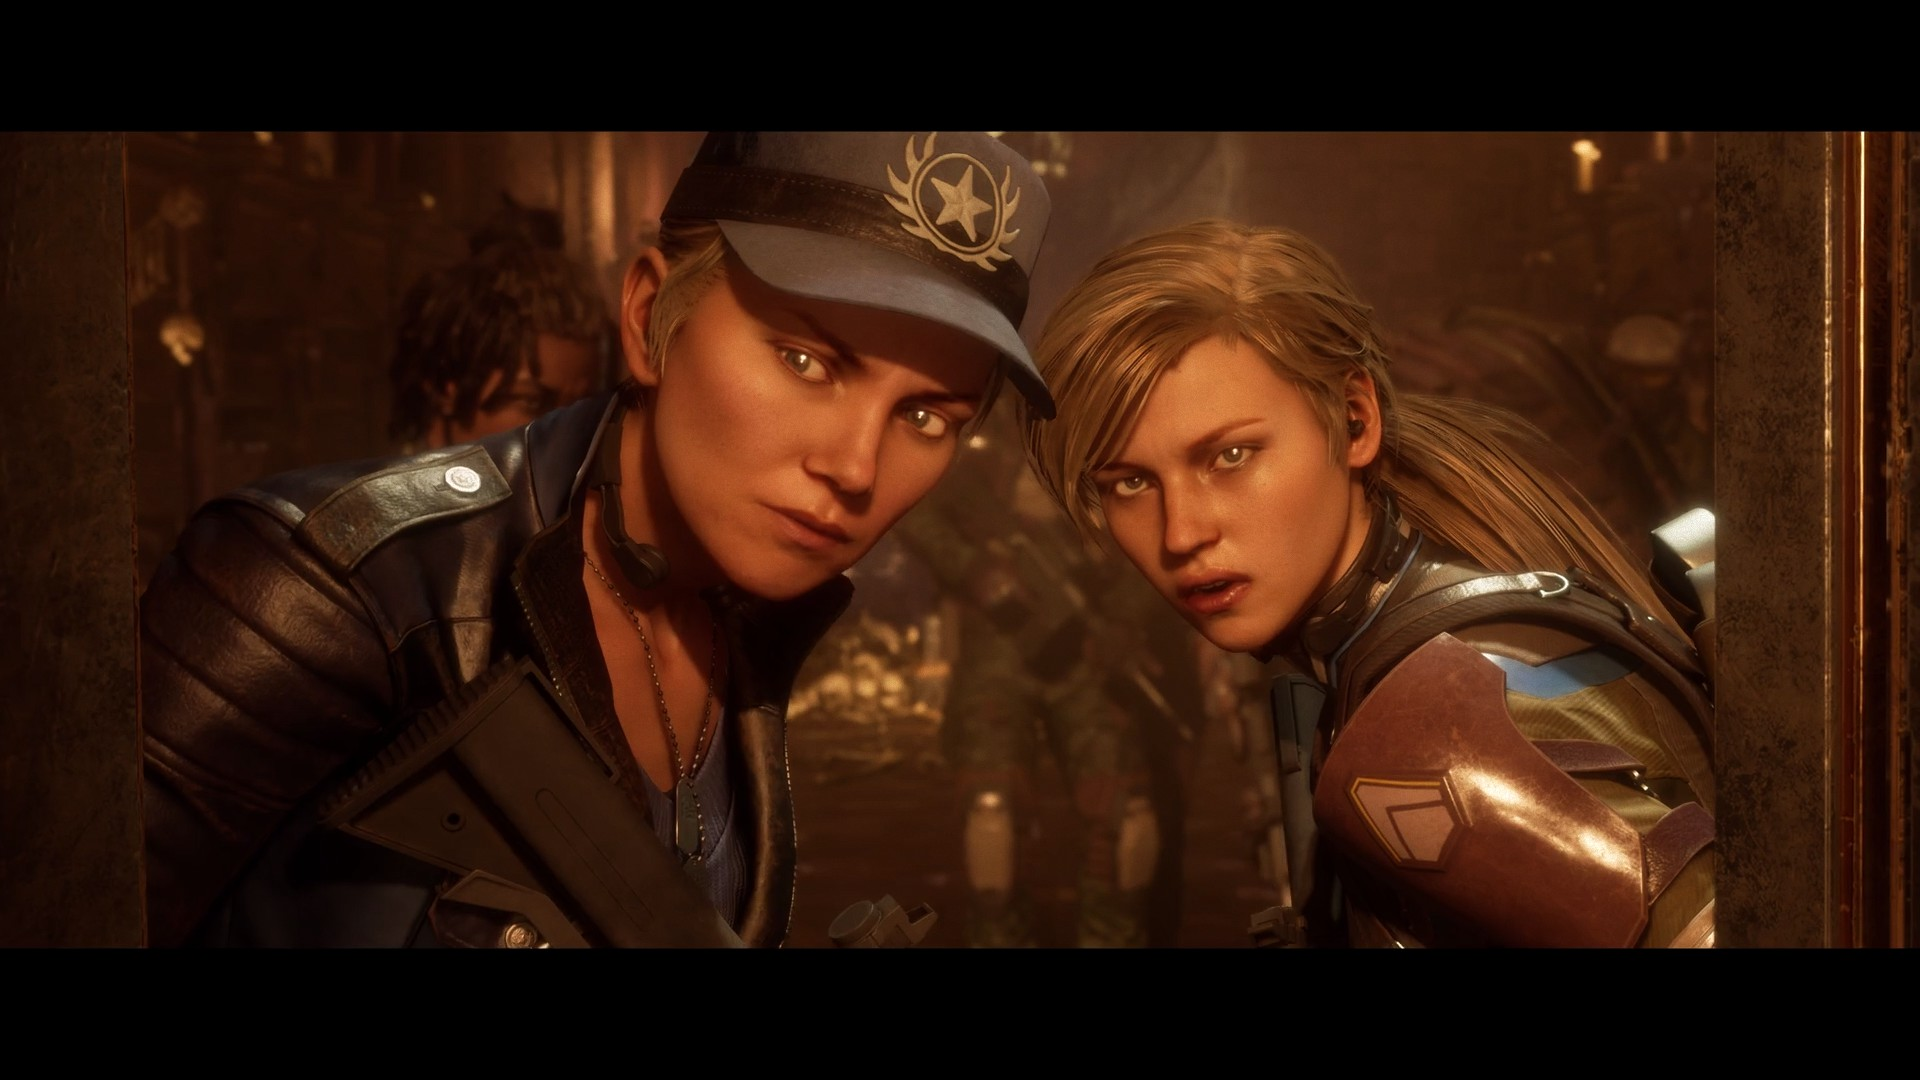 976310_screenshots_20190424201428_1.jpg - Mortal Kombat 11